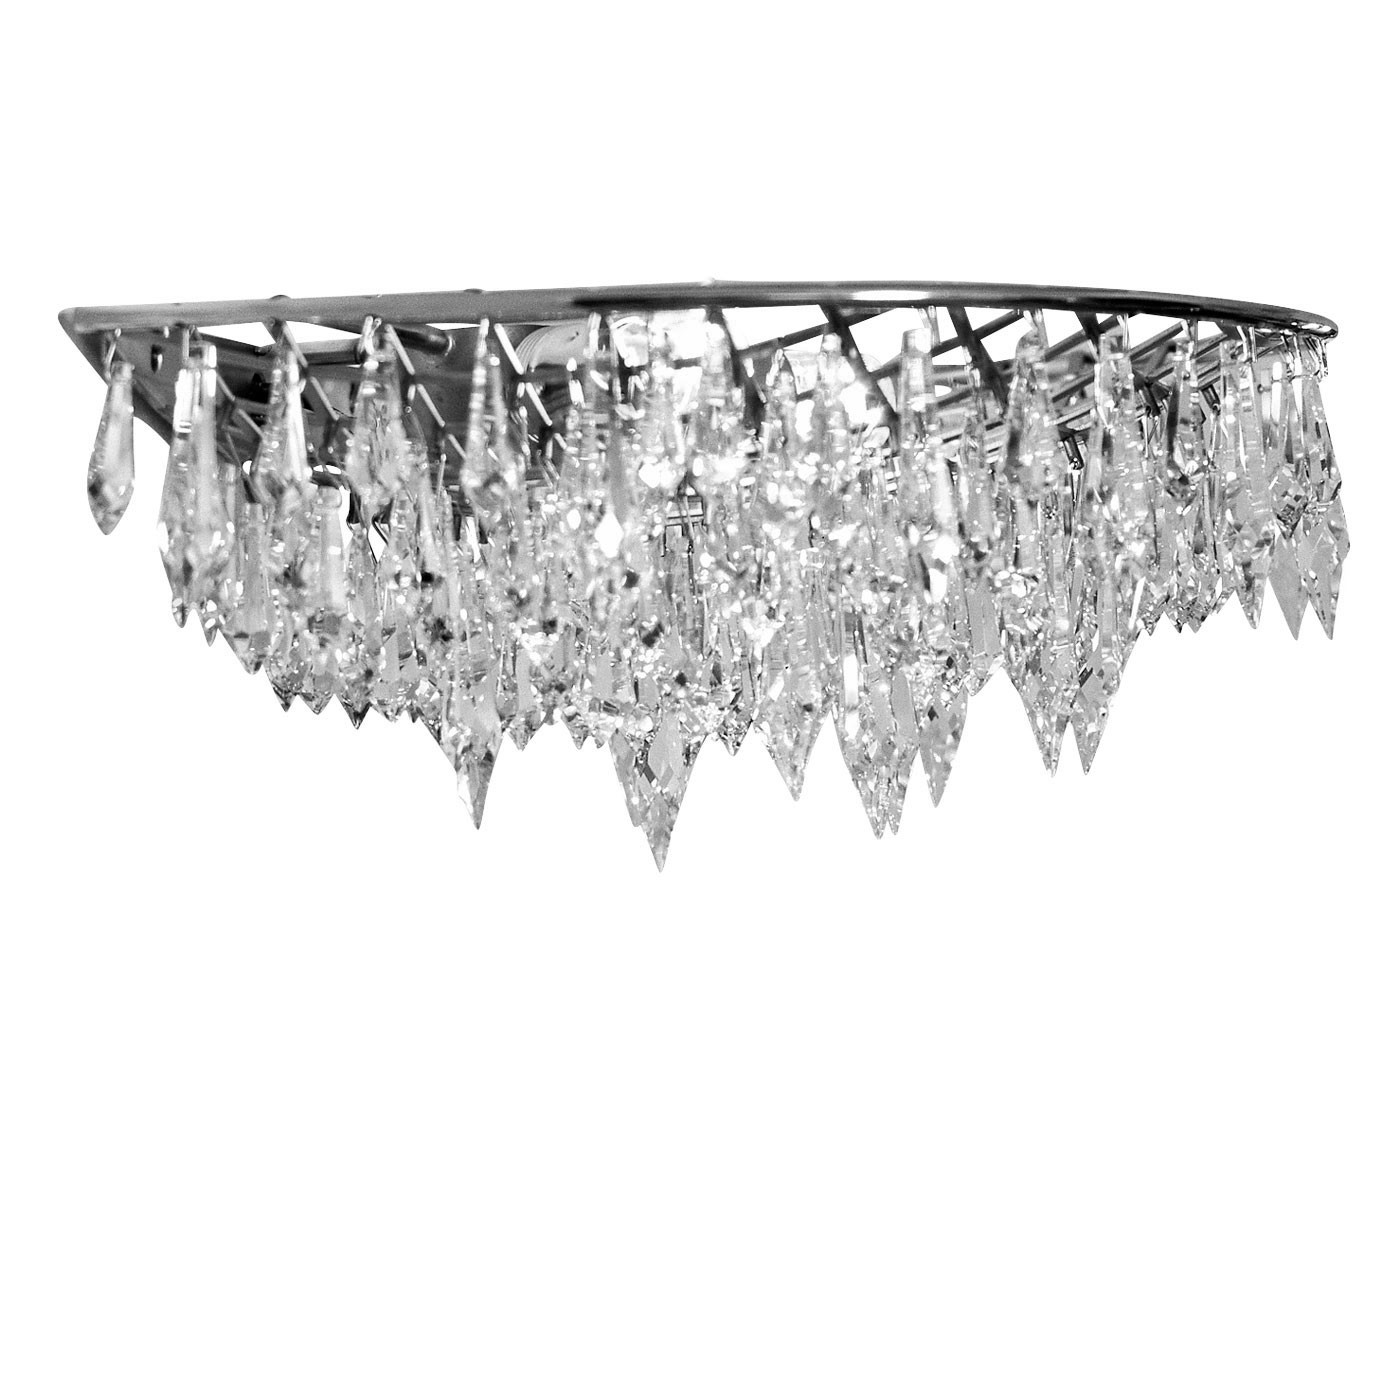 Anthologie Quartett Crystal Rain 45 Wall Light